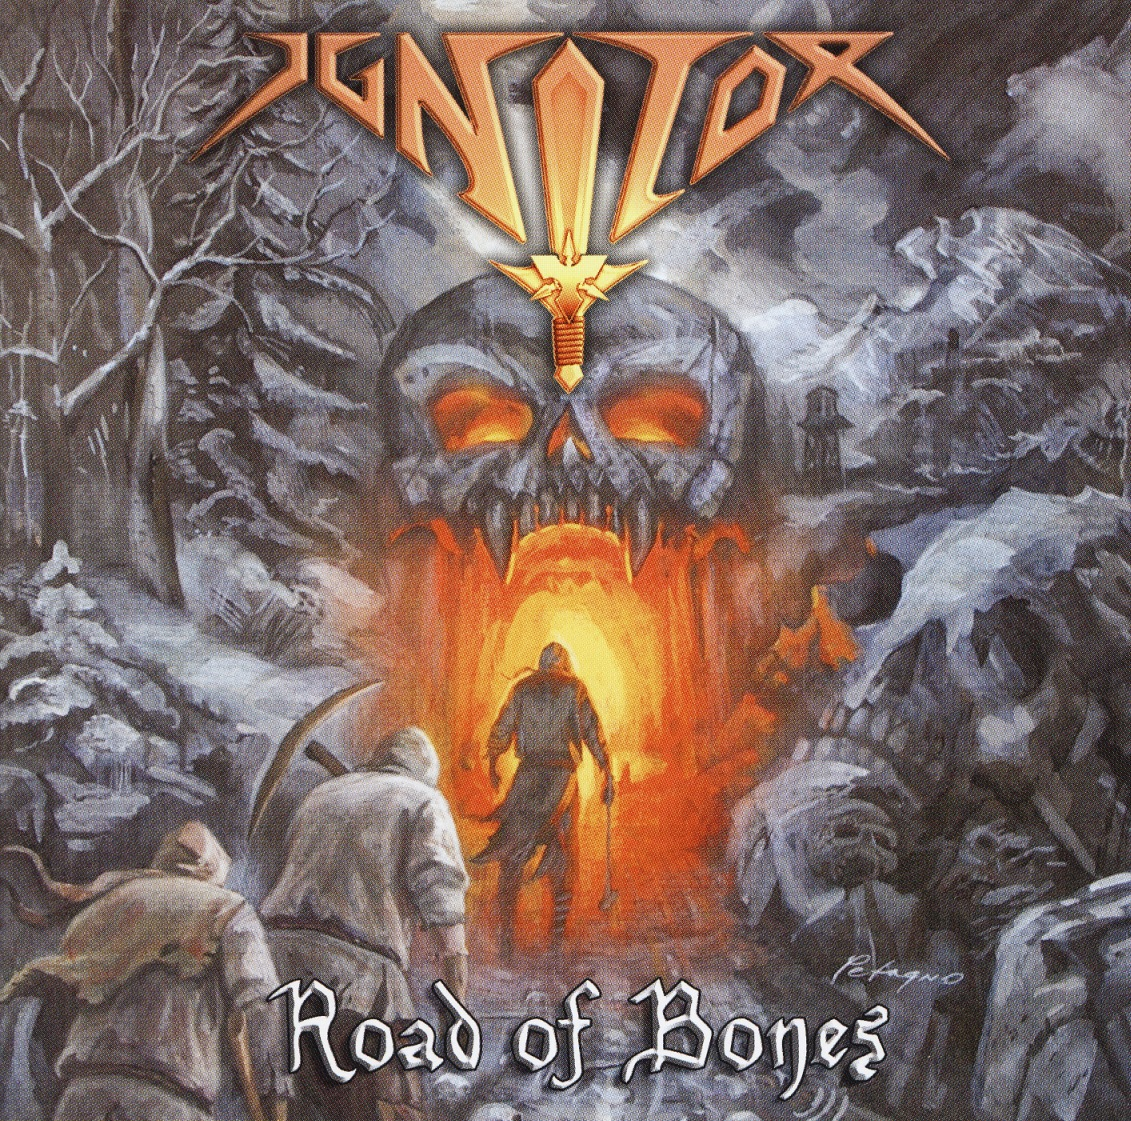 IGNITOR (US) / Road Of Bones